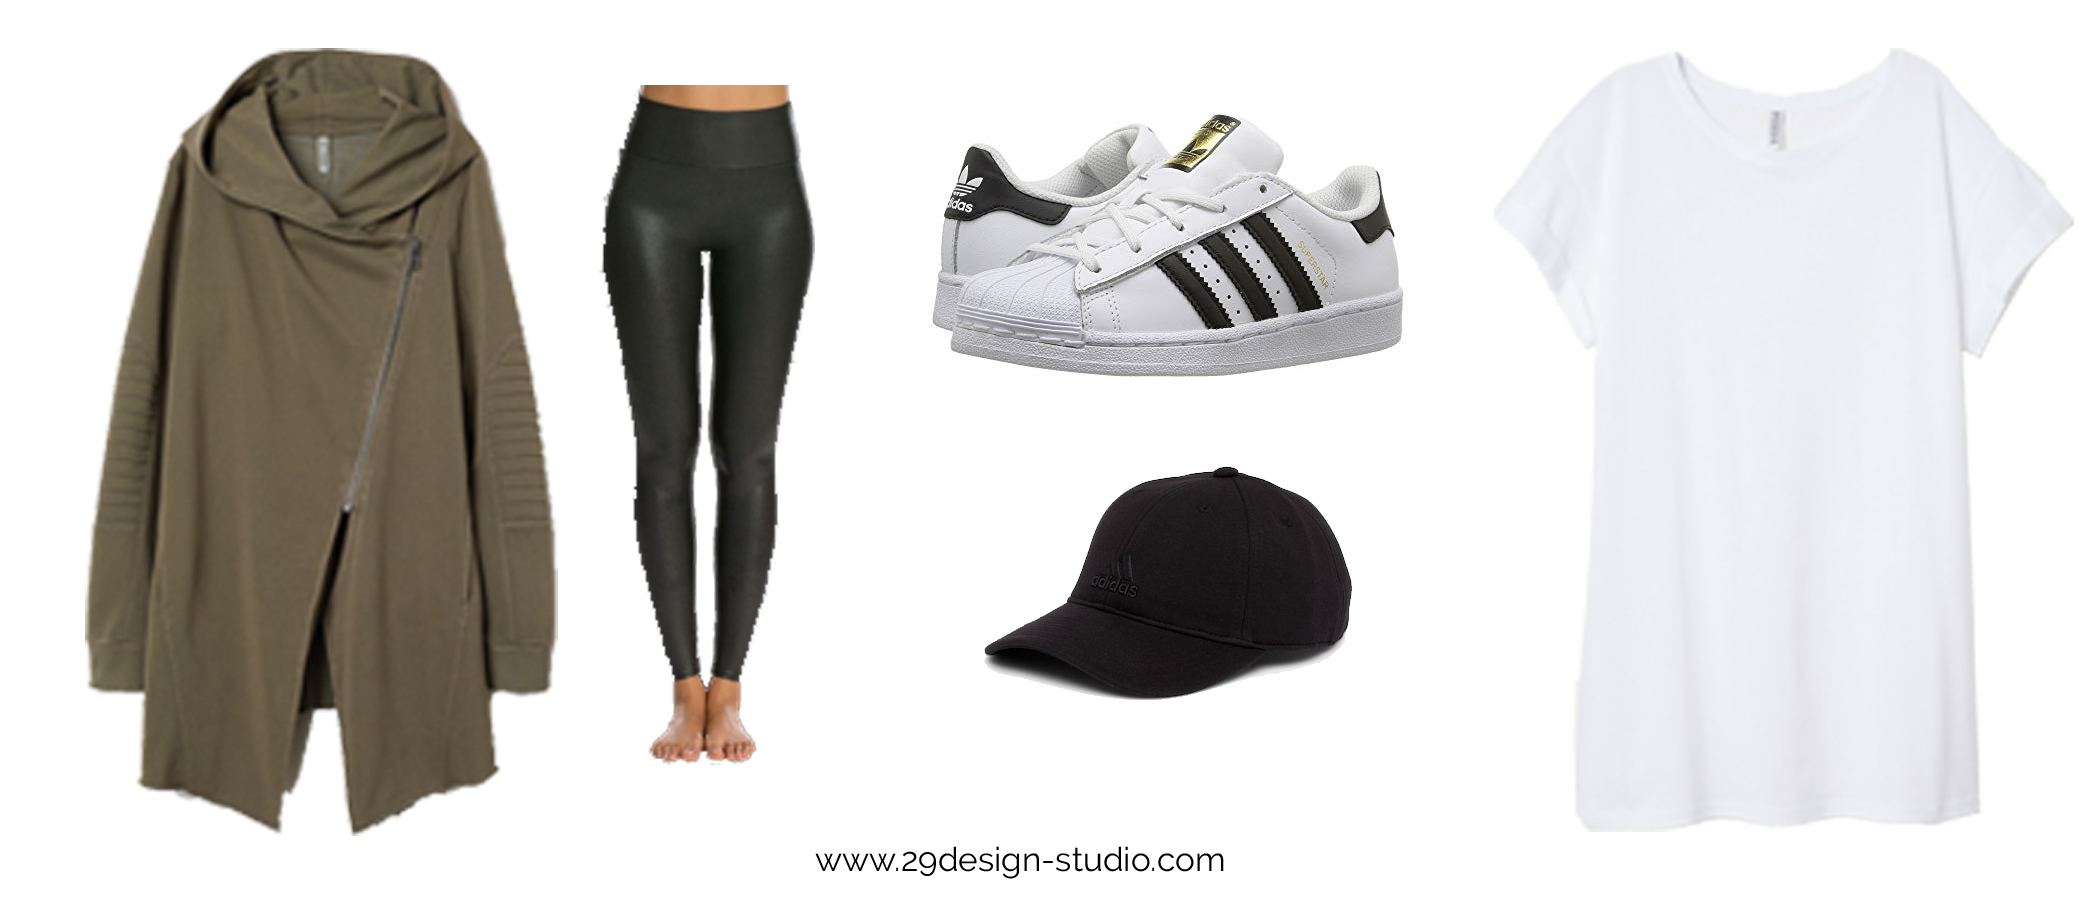 Athleisure Outfit with Spanx Faux Leather Leggings Moto Hoodie Adidas All Star Sneakers and Baseball cap